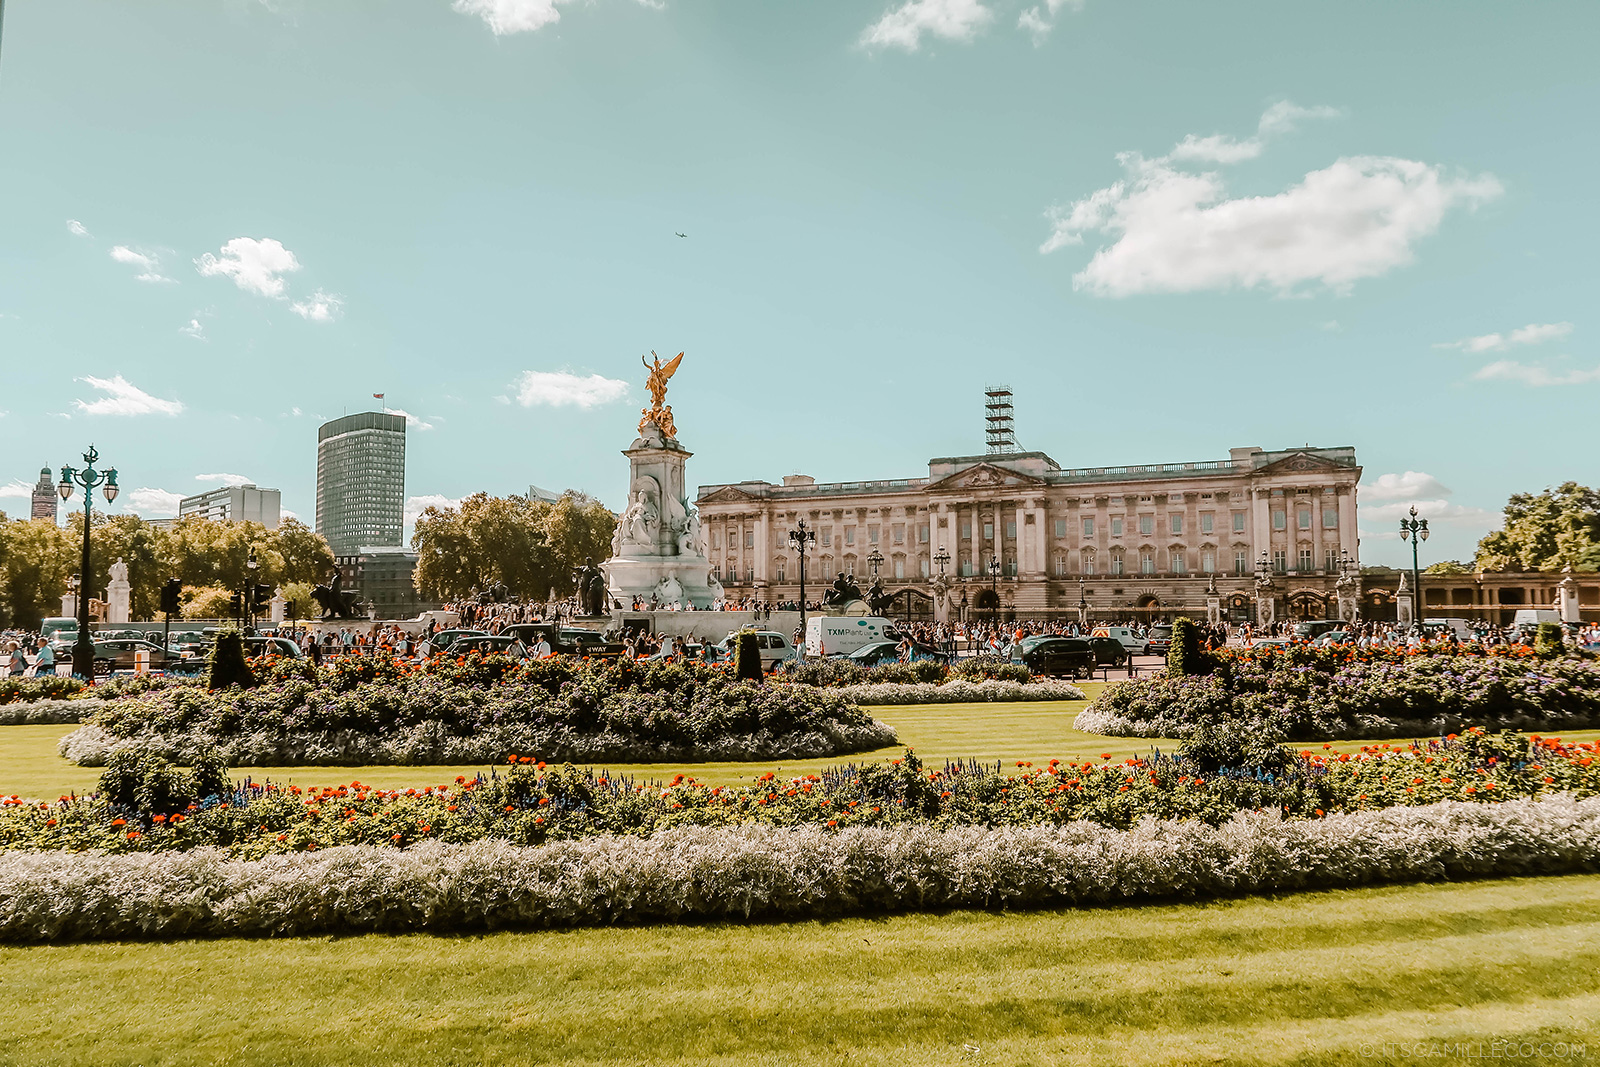 Buckingham Palace - Camille Co